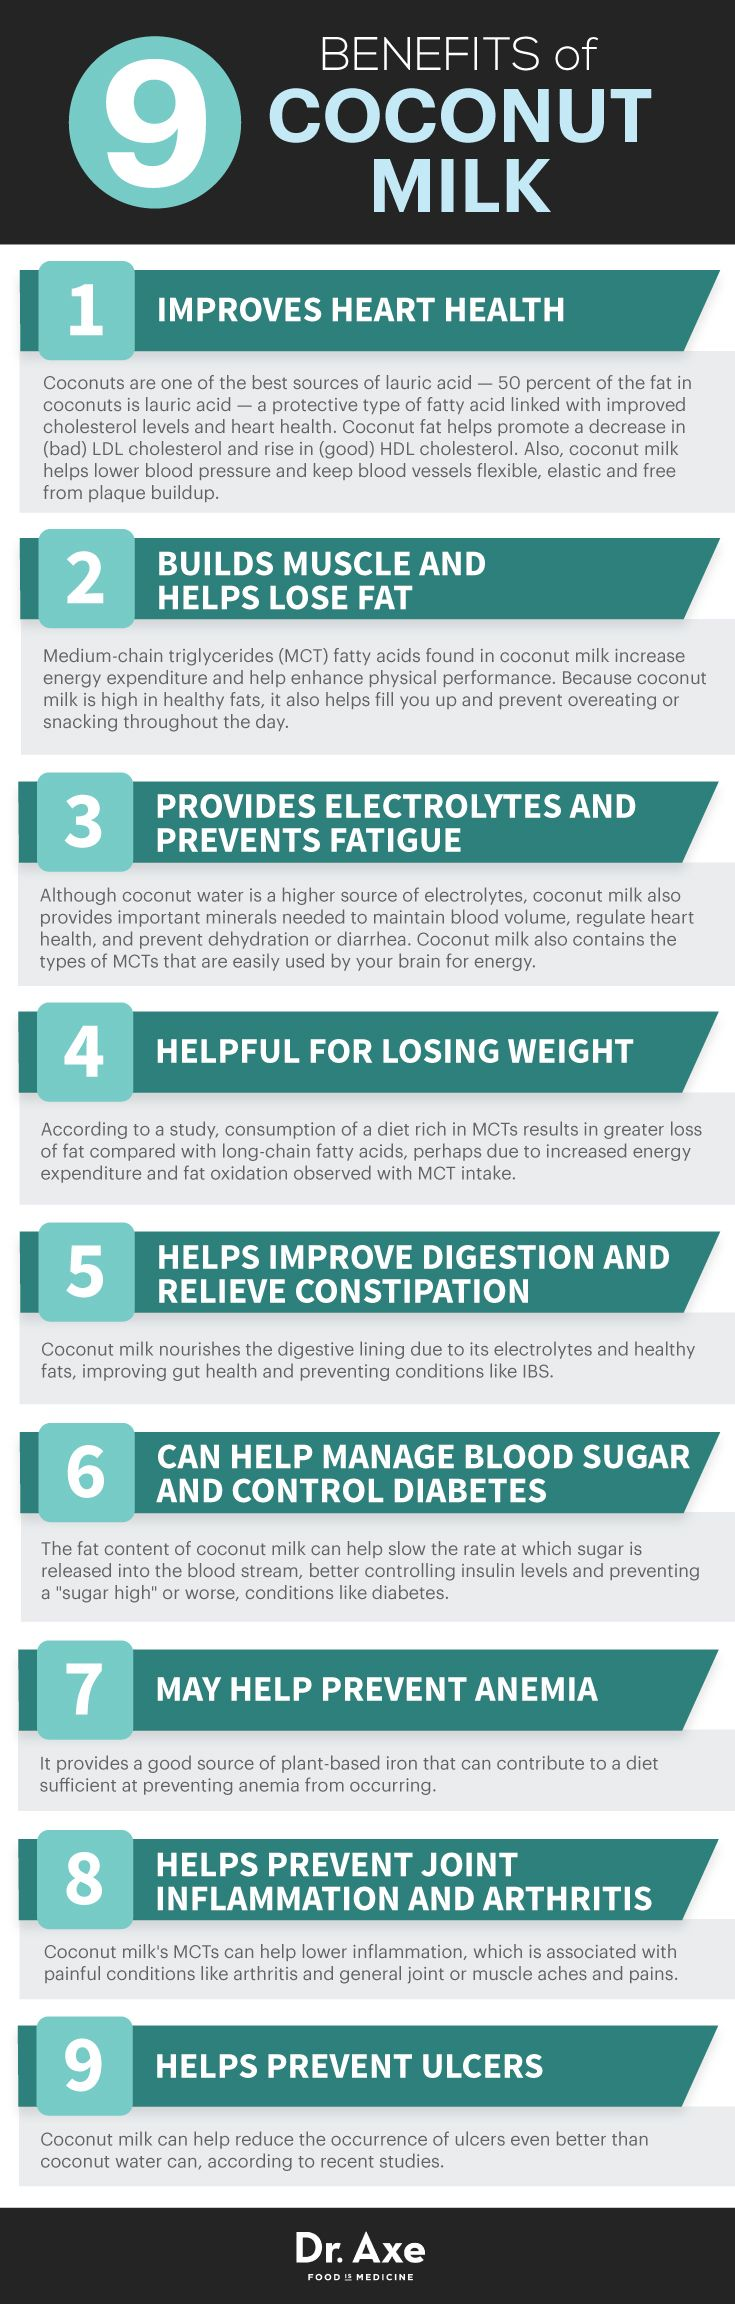 Why a coconut milk P96 Shake Challenge?? See all the benefits of coconut milk…